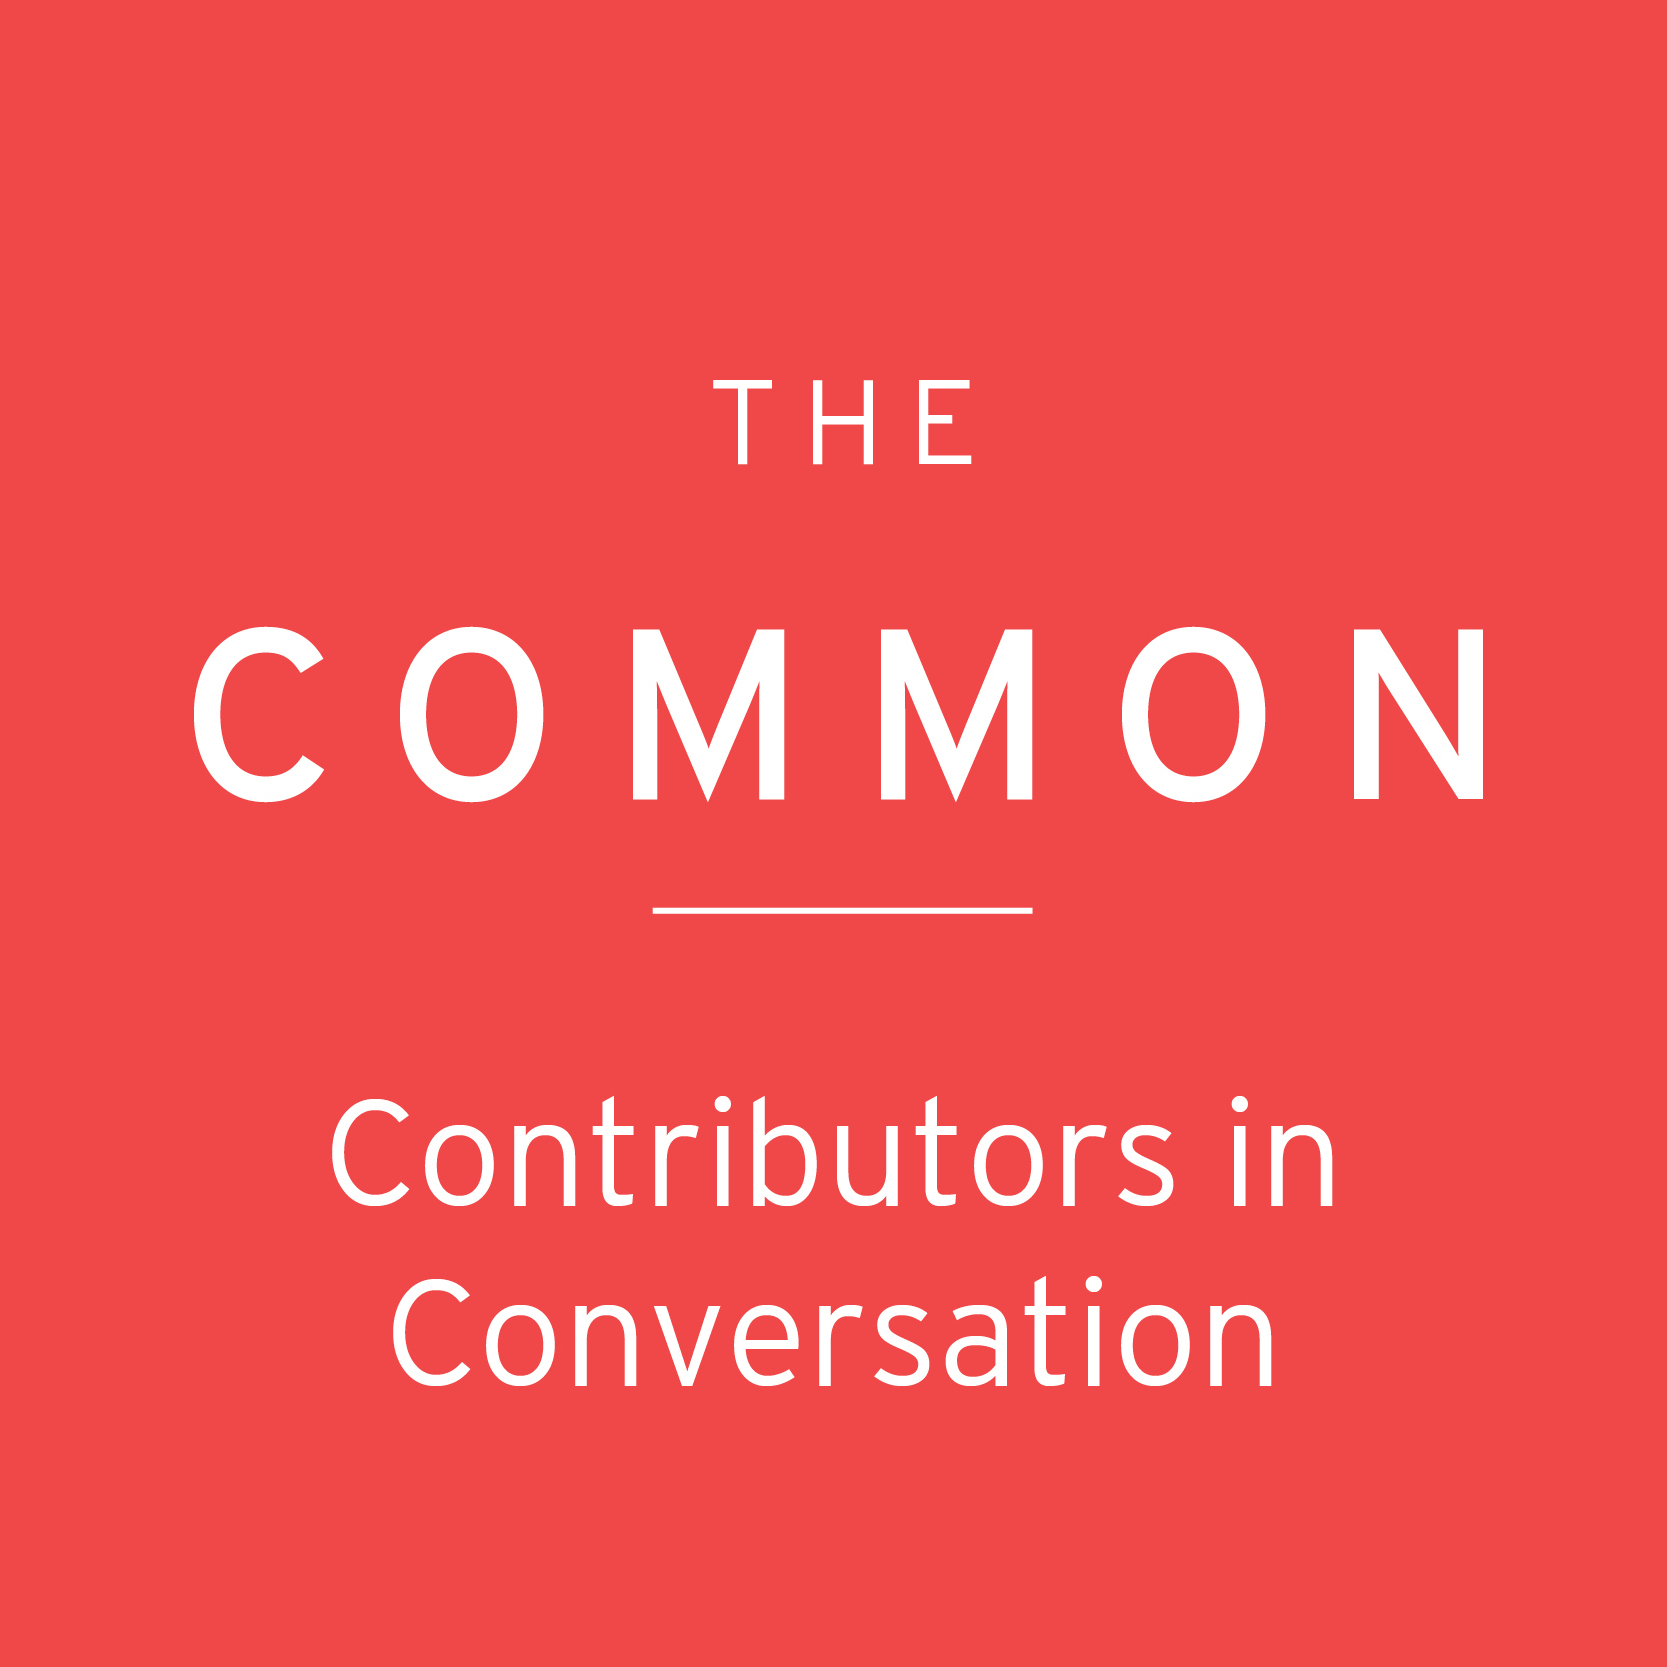 The Common: Contributors in Conversation